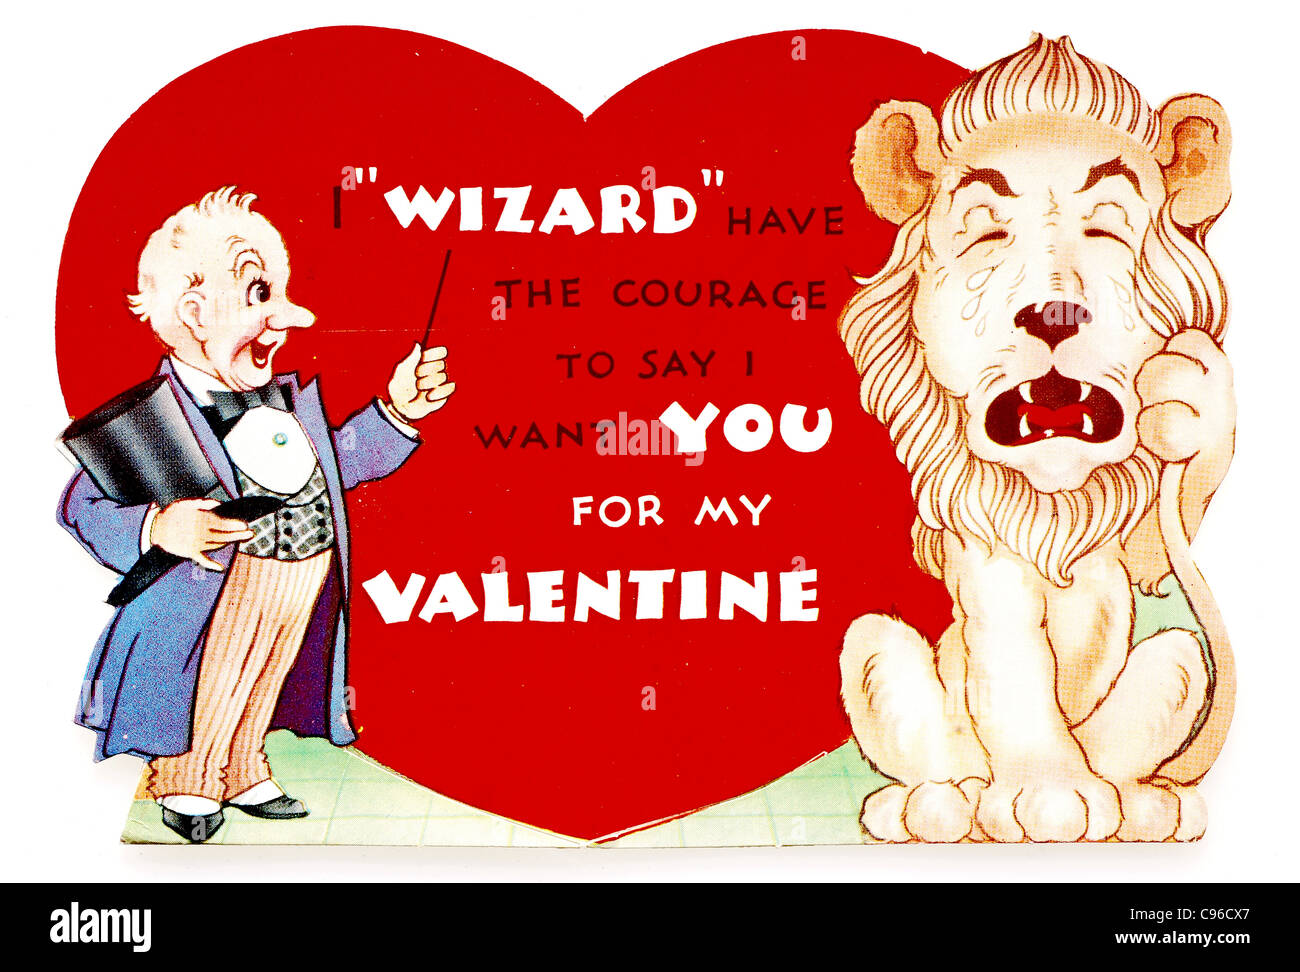 Wizard of Oz themed Valentine's Day card from the 1940s - Stock Image